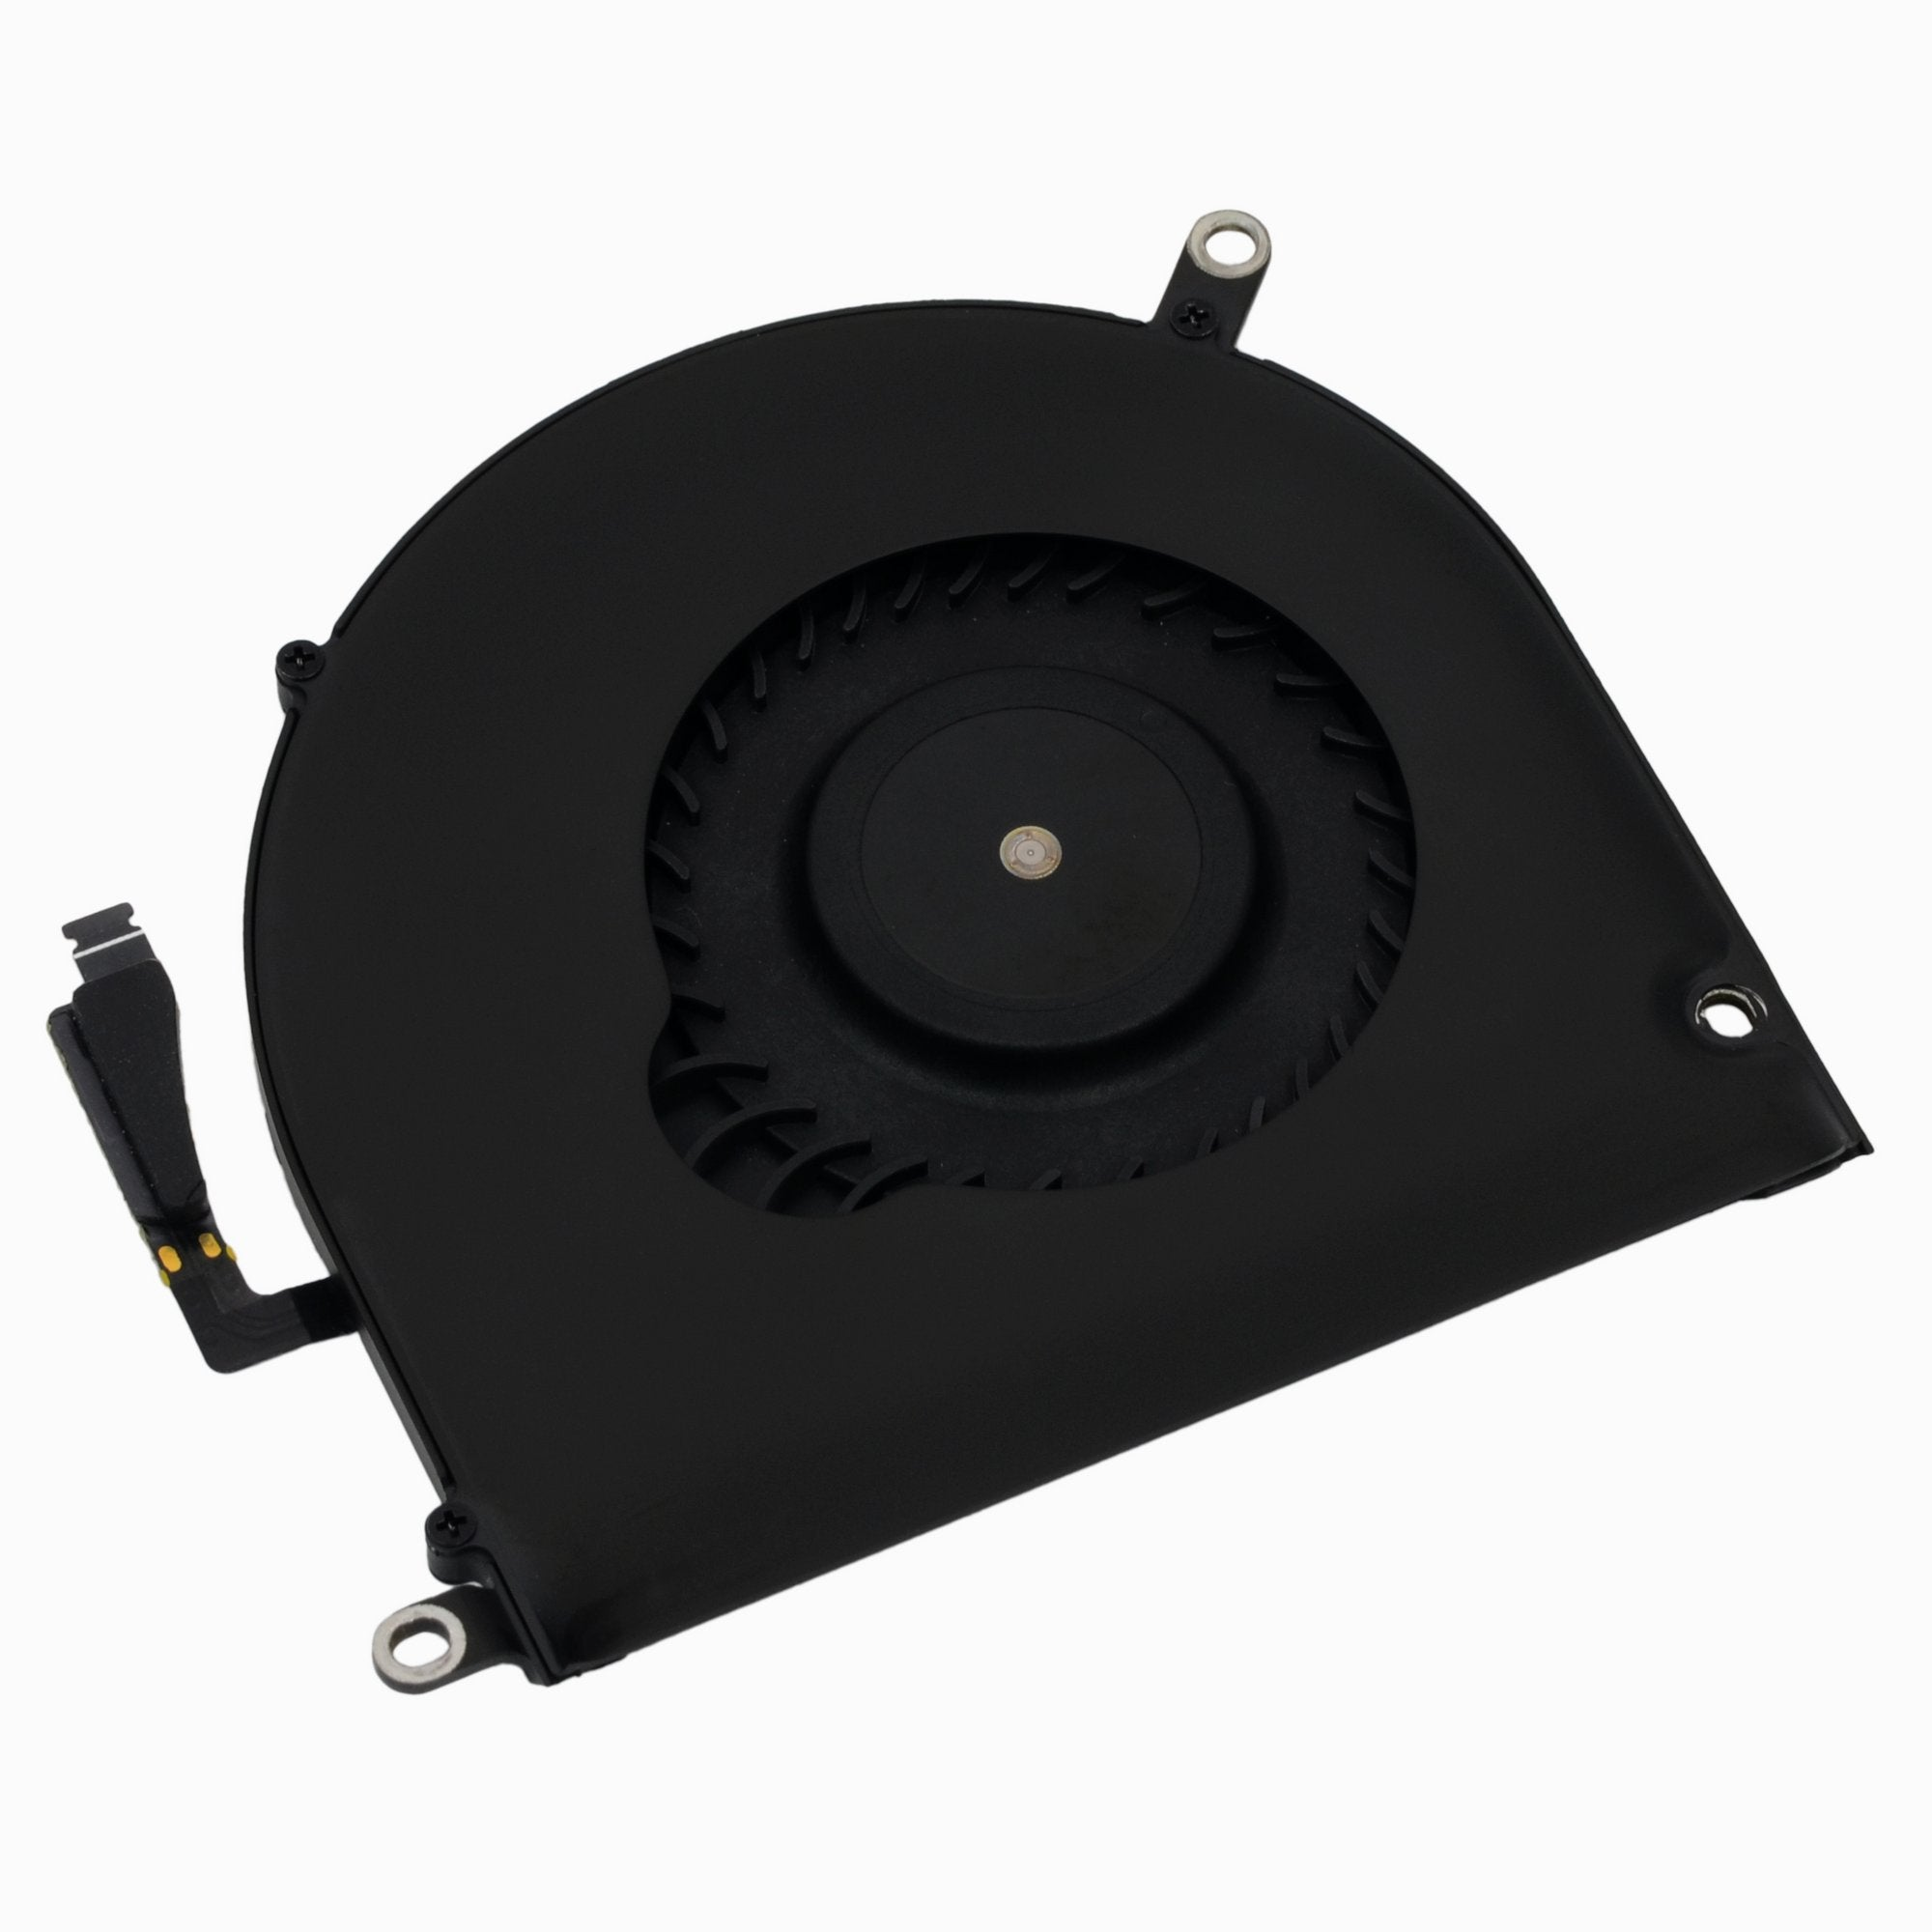 "MacBook Pro 15"" Retina (Mid 2012/Early 2013) Right Fan"